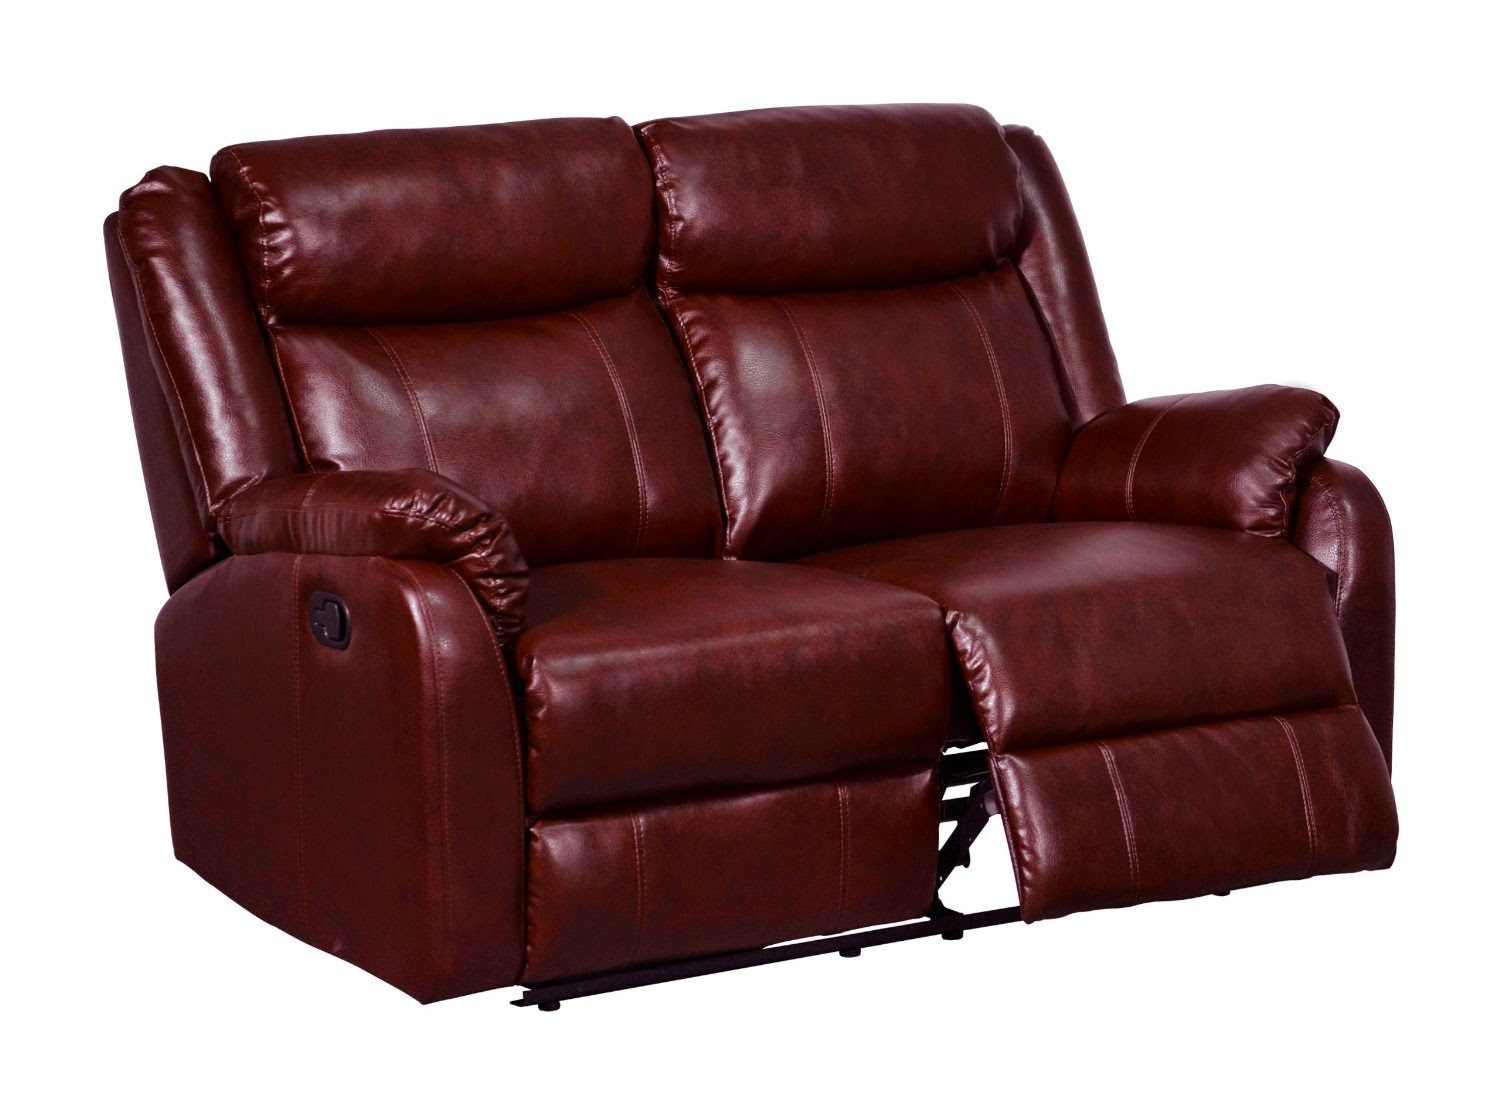 Leather Loveseat Cheap Reclining Loveseats Cheap Reclining Sofas Sale 2